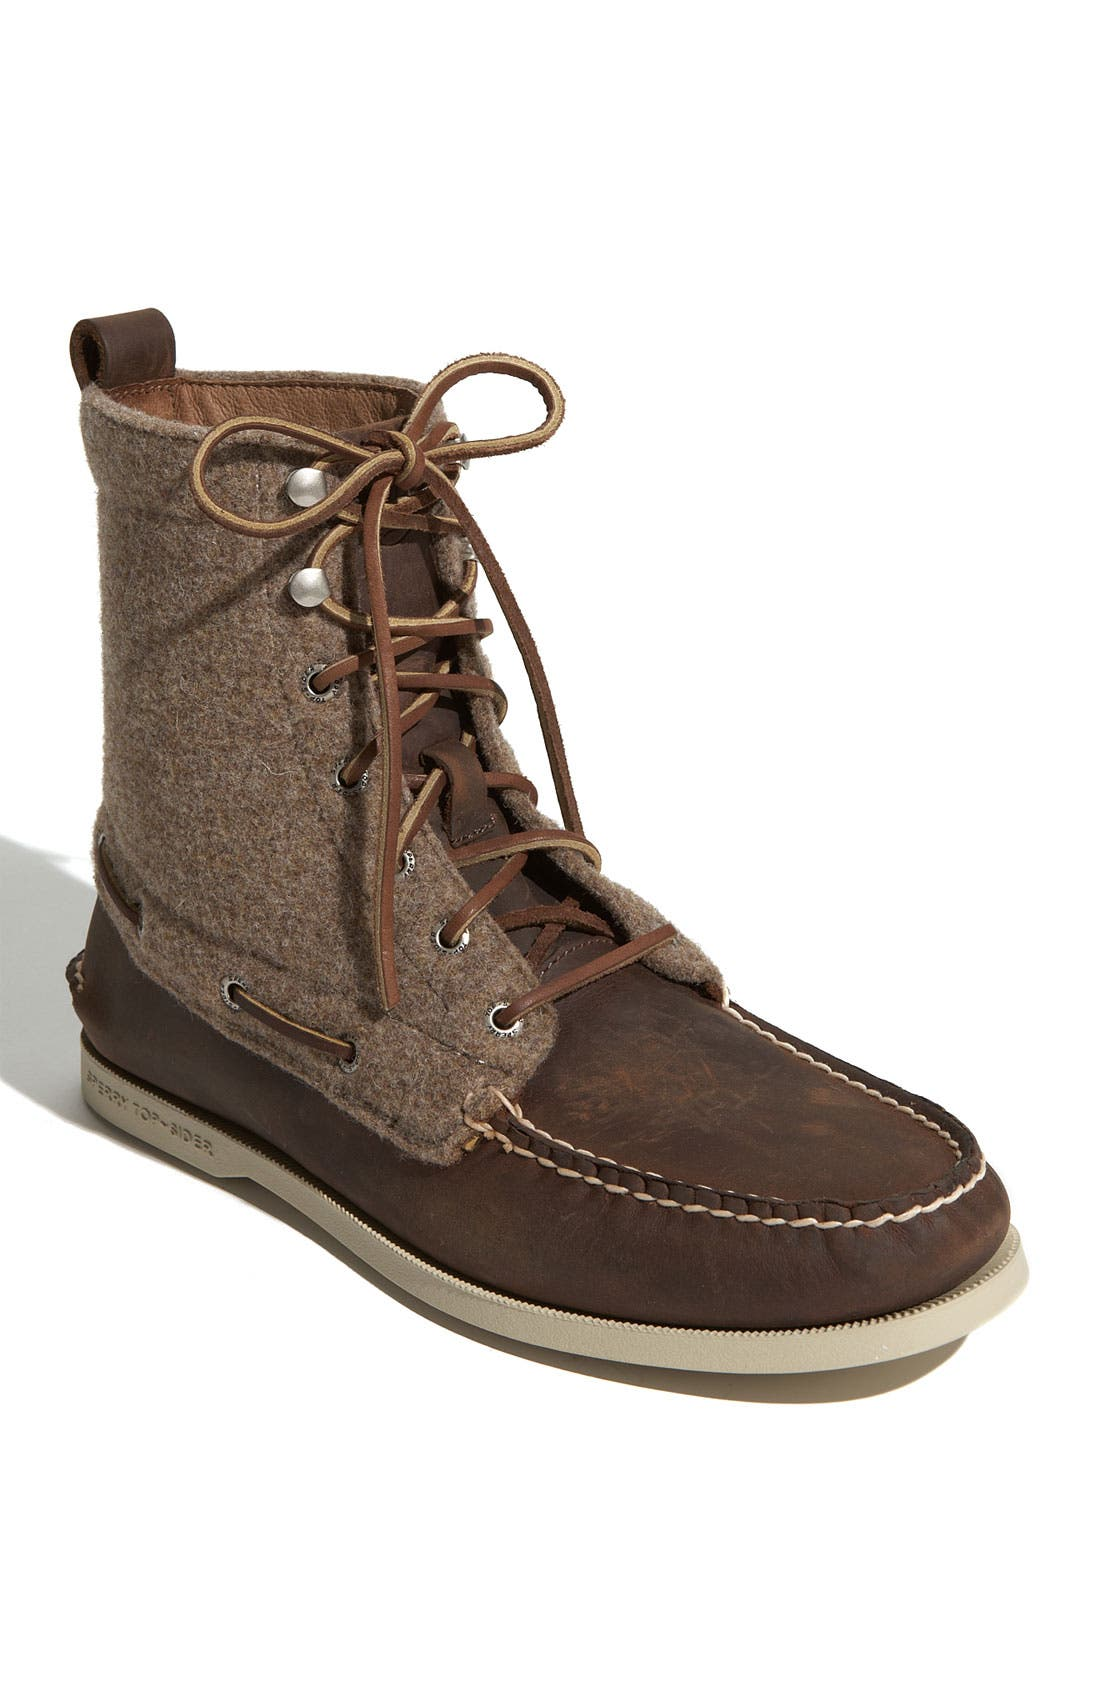 Alternate Image 1 Selected - Sperry Top-Sider® 'Authentic Original 7-Eye' Boot